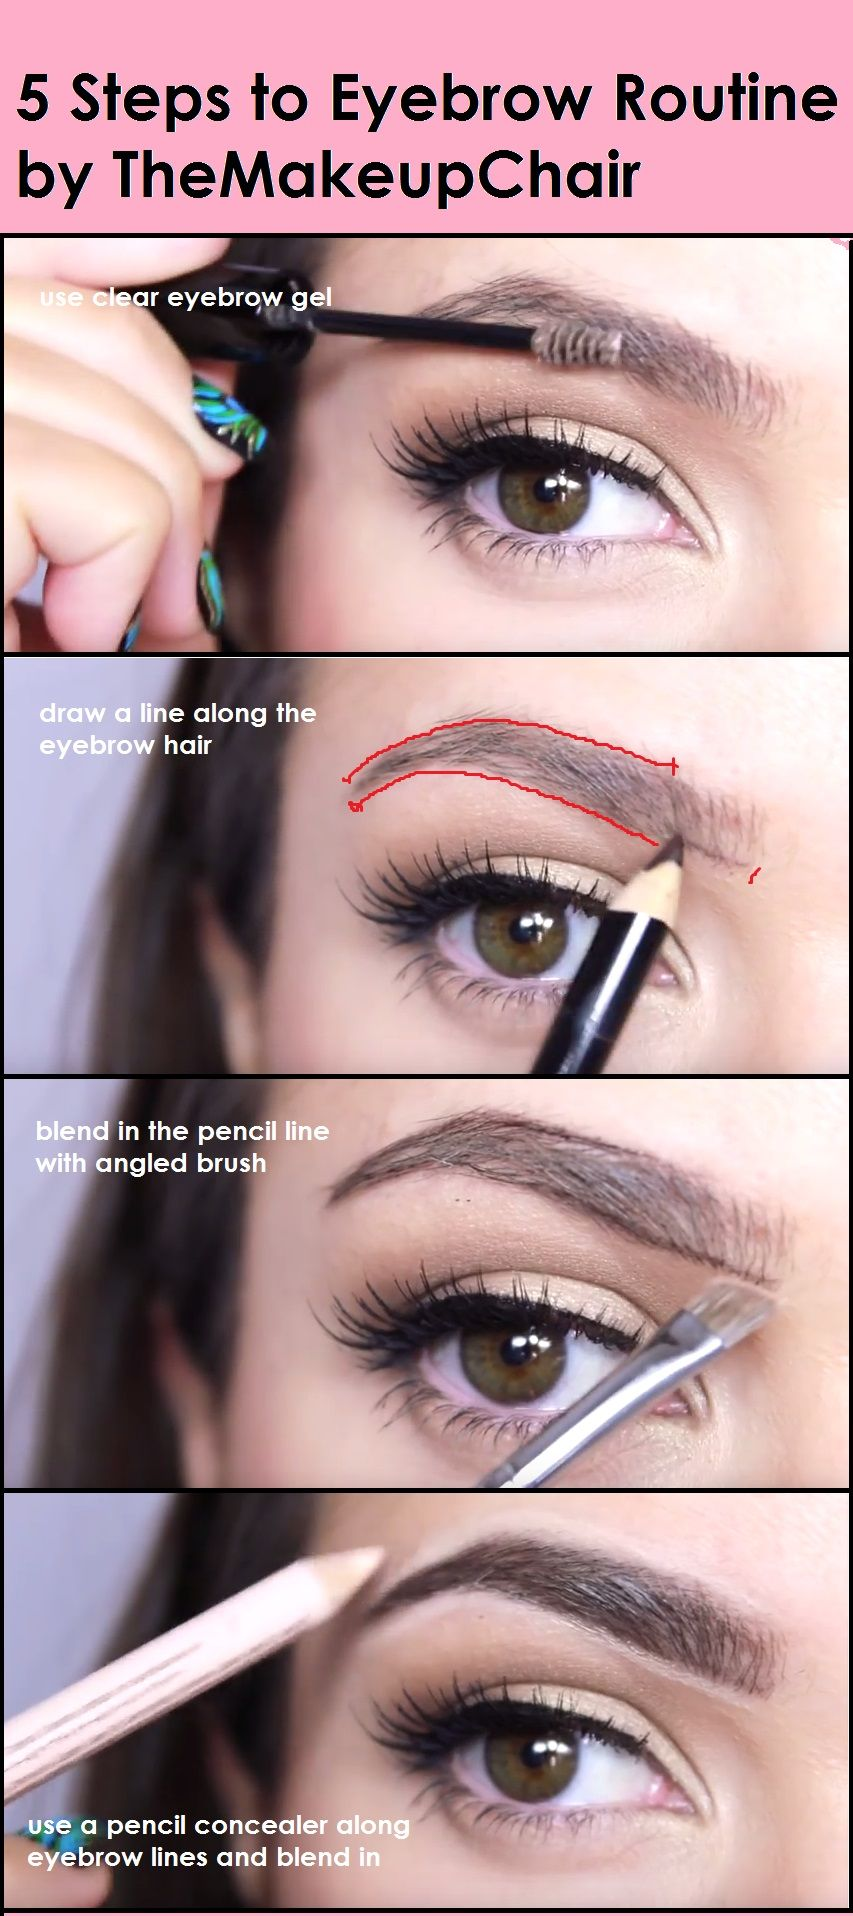 5 Steps To Eyebrow Routine Themakeupchair Microblading Eyebrows